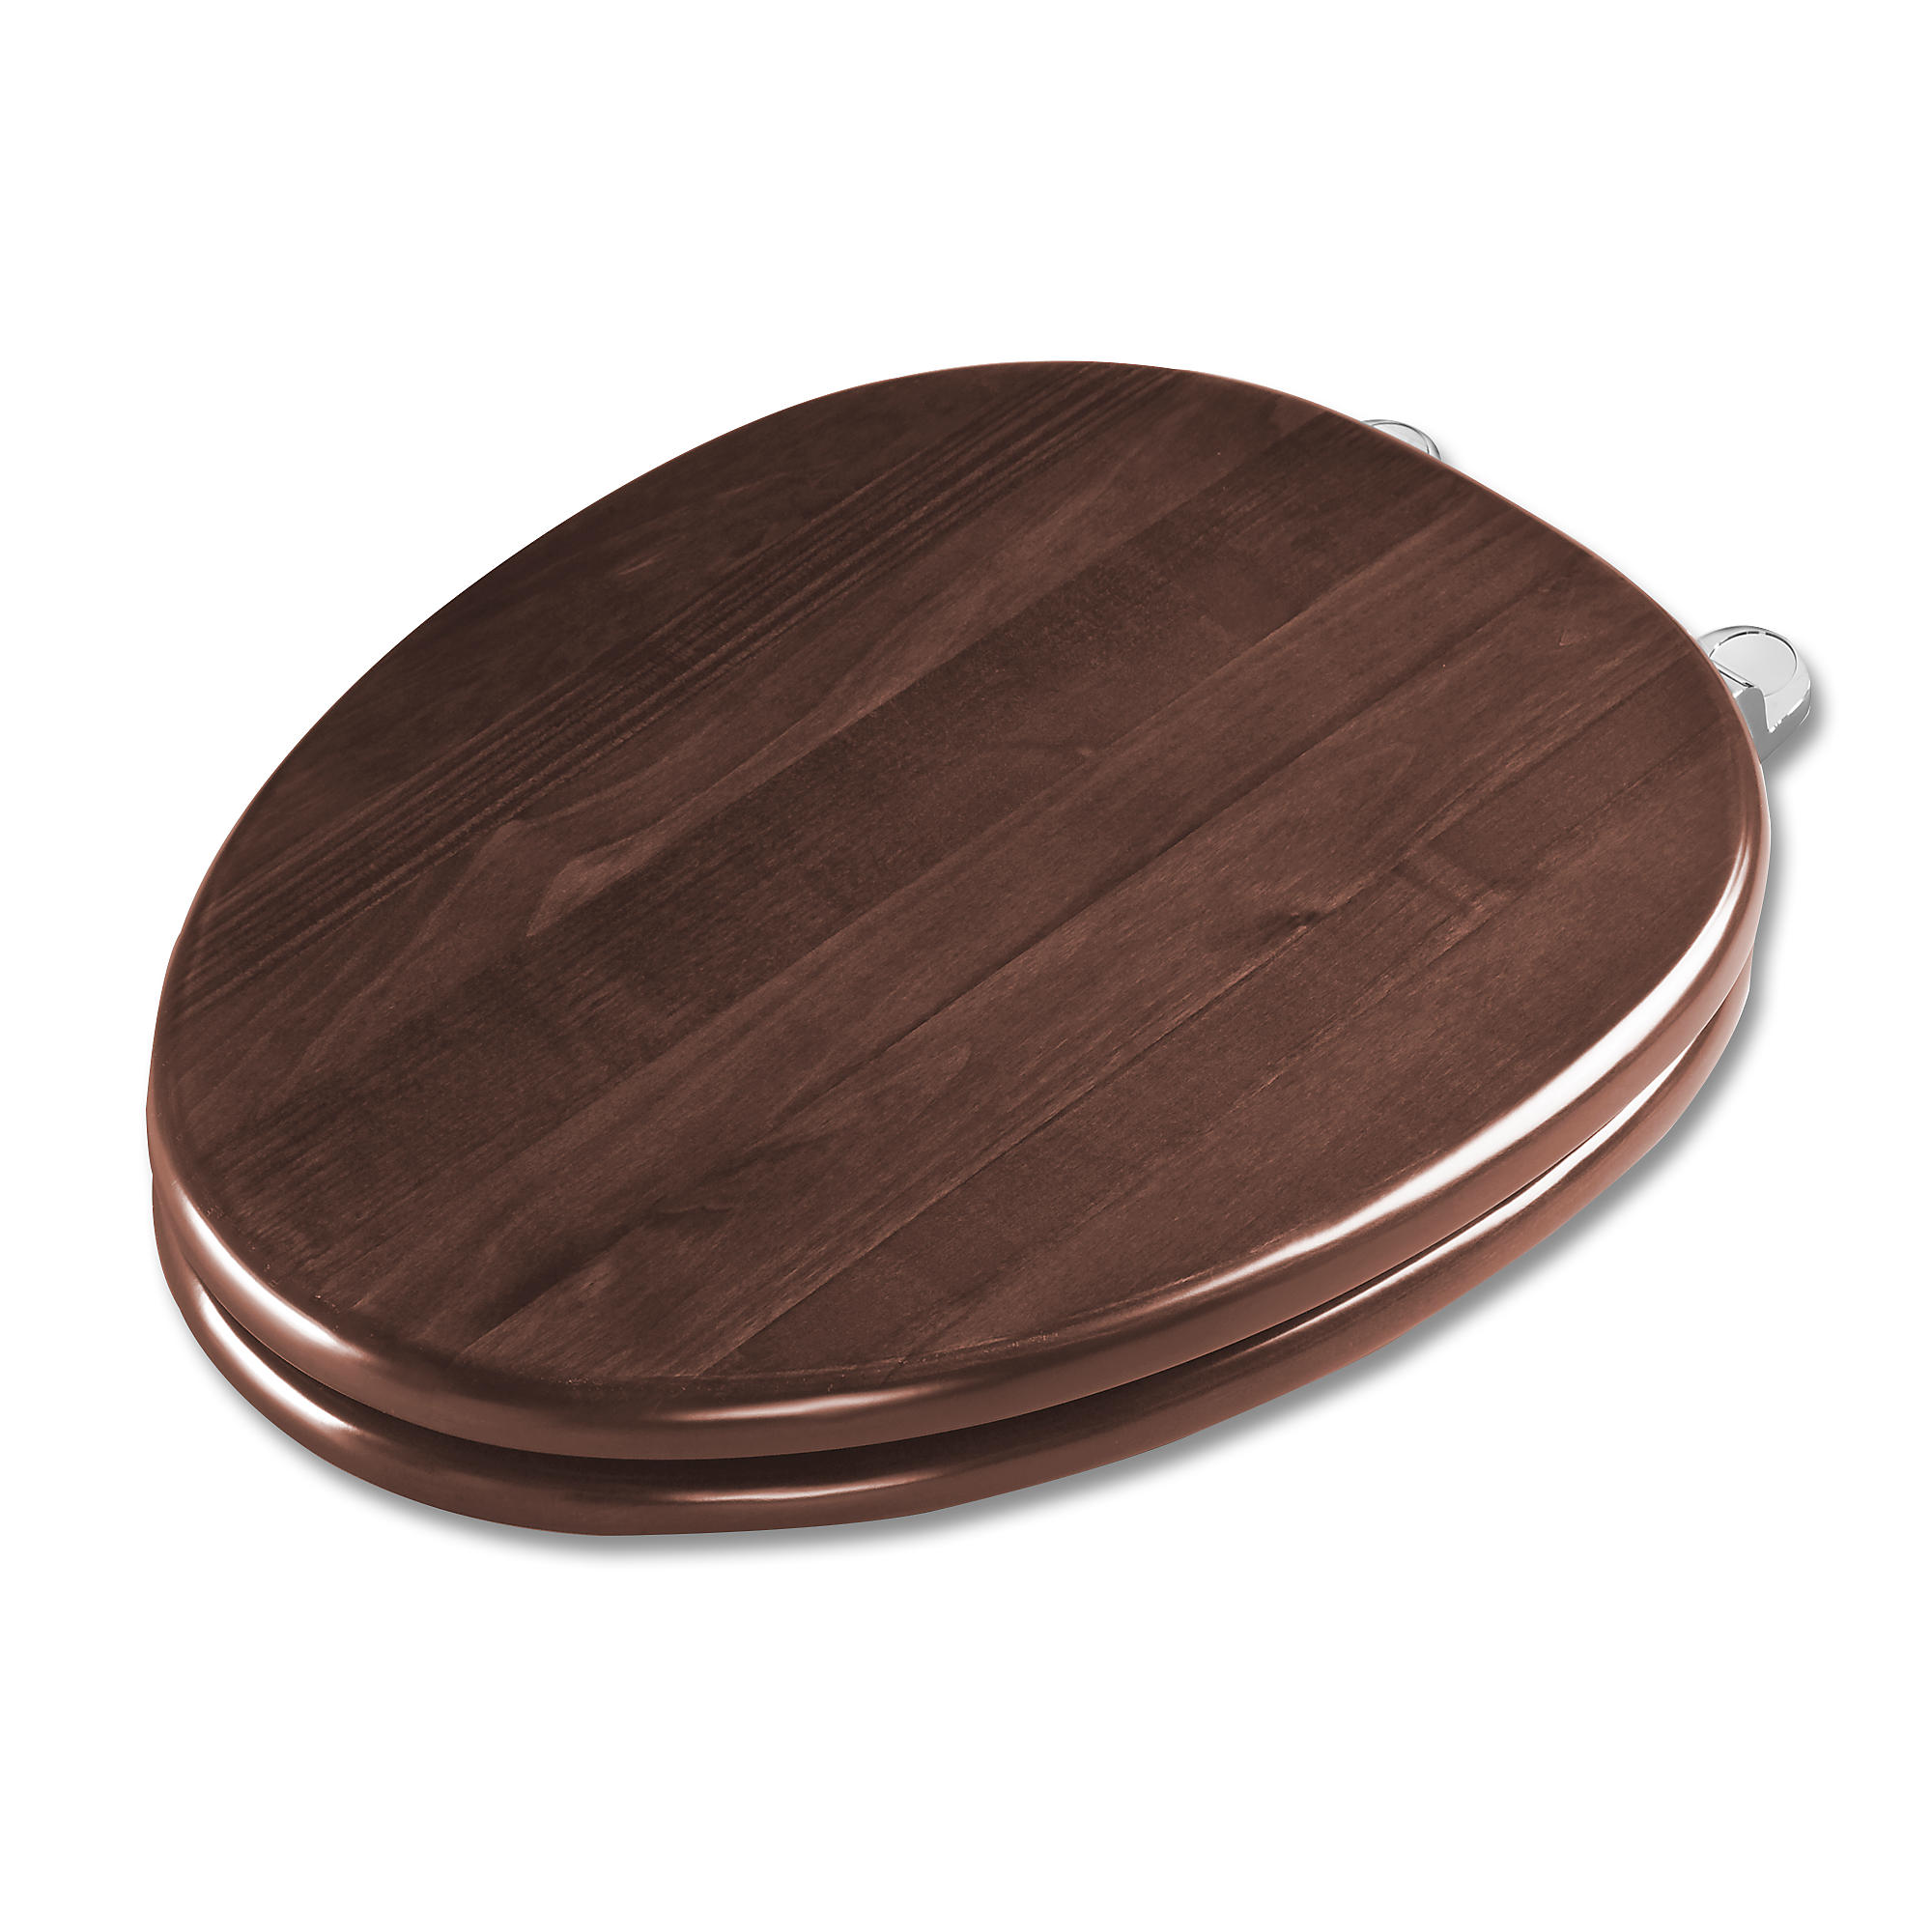 Ss304 cp maple softclose  toilet seat   elongated 0